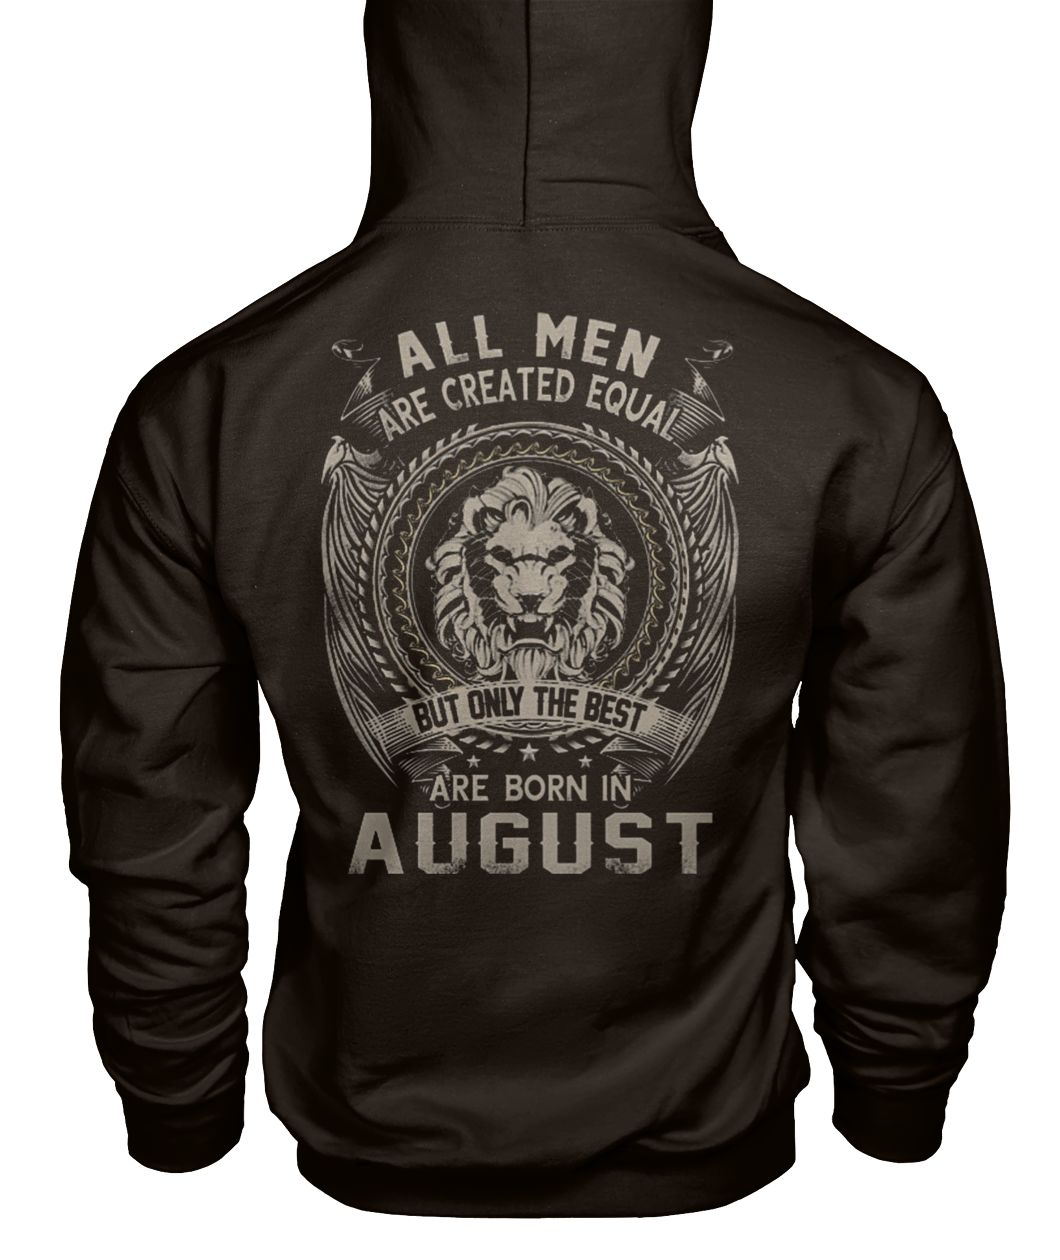 All men created equal but the best born in august gildan hoodie